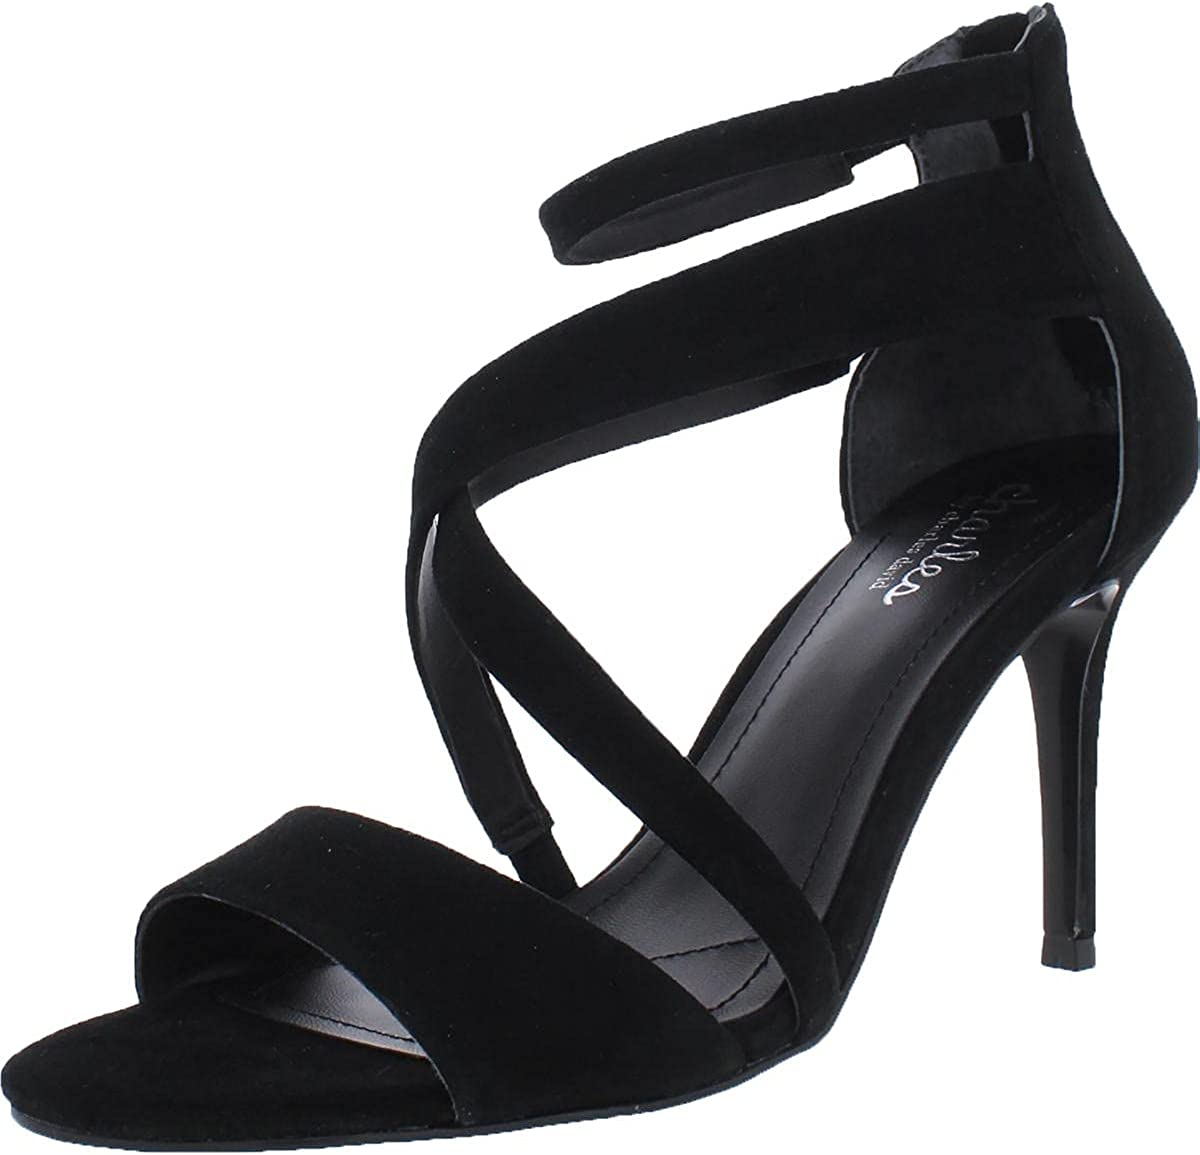 Charles by David Women's Indefinitely High Outstanding Strappy Heel Dress Sandal